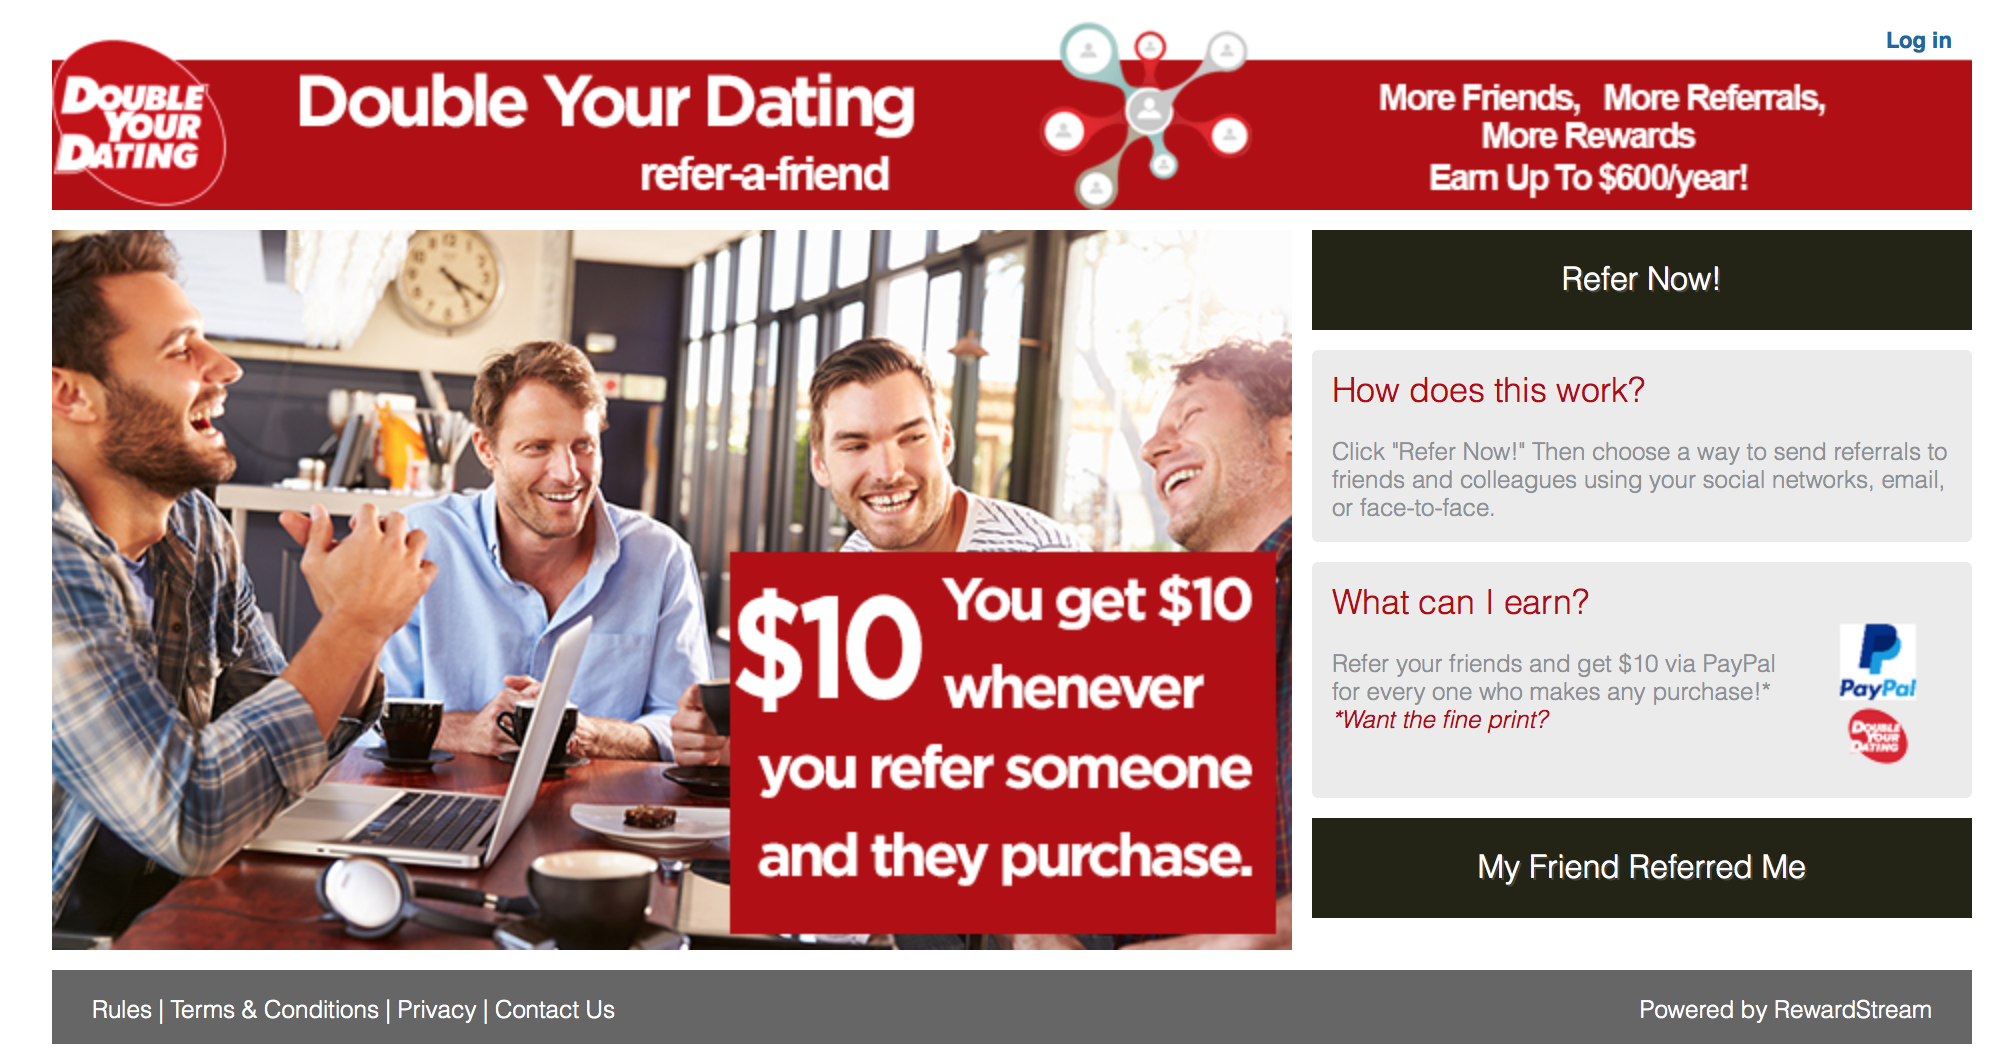 Dating Advice Site Double Your Dating Chooses RewardStream For New Referral Scheme